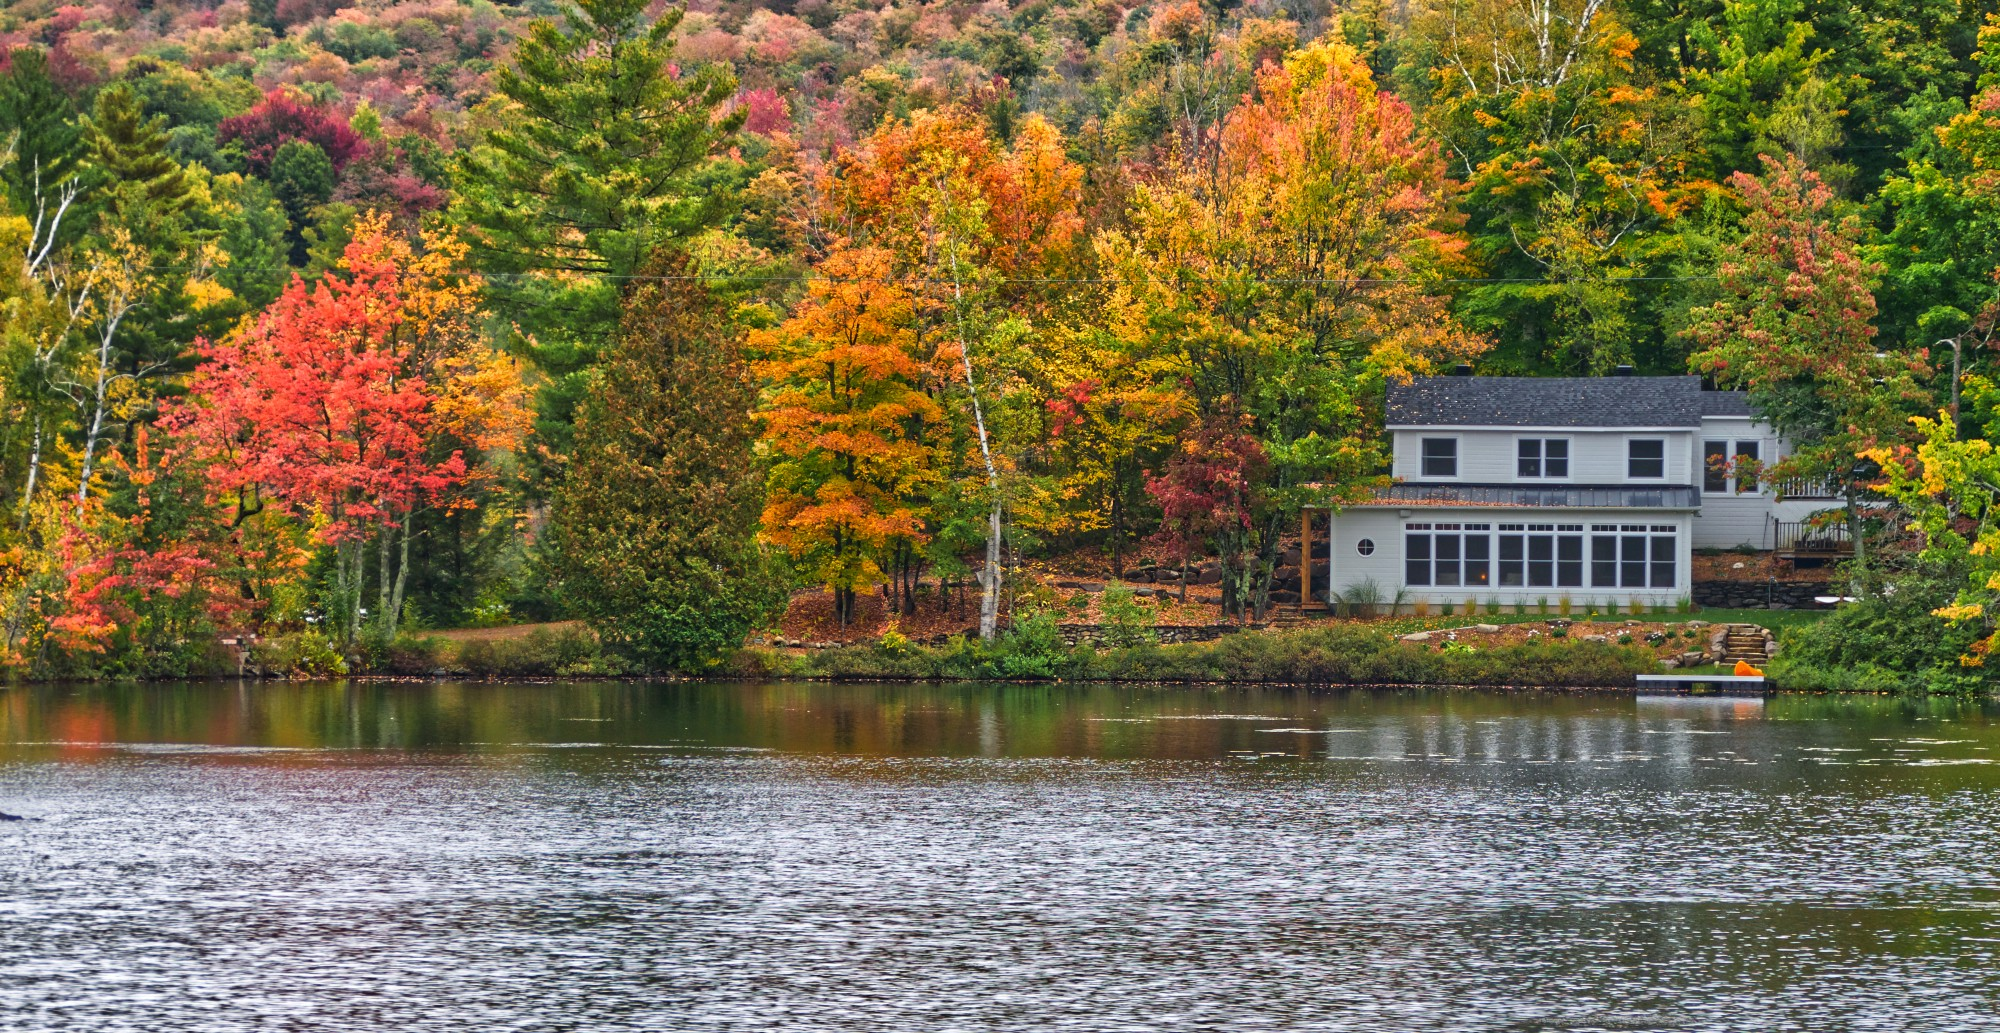 A quiet house by a river or lake with colorful autumn leaves.